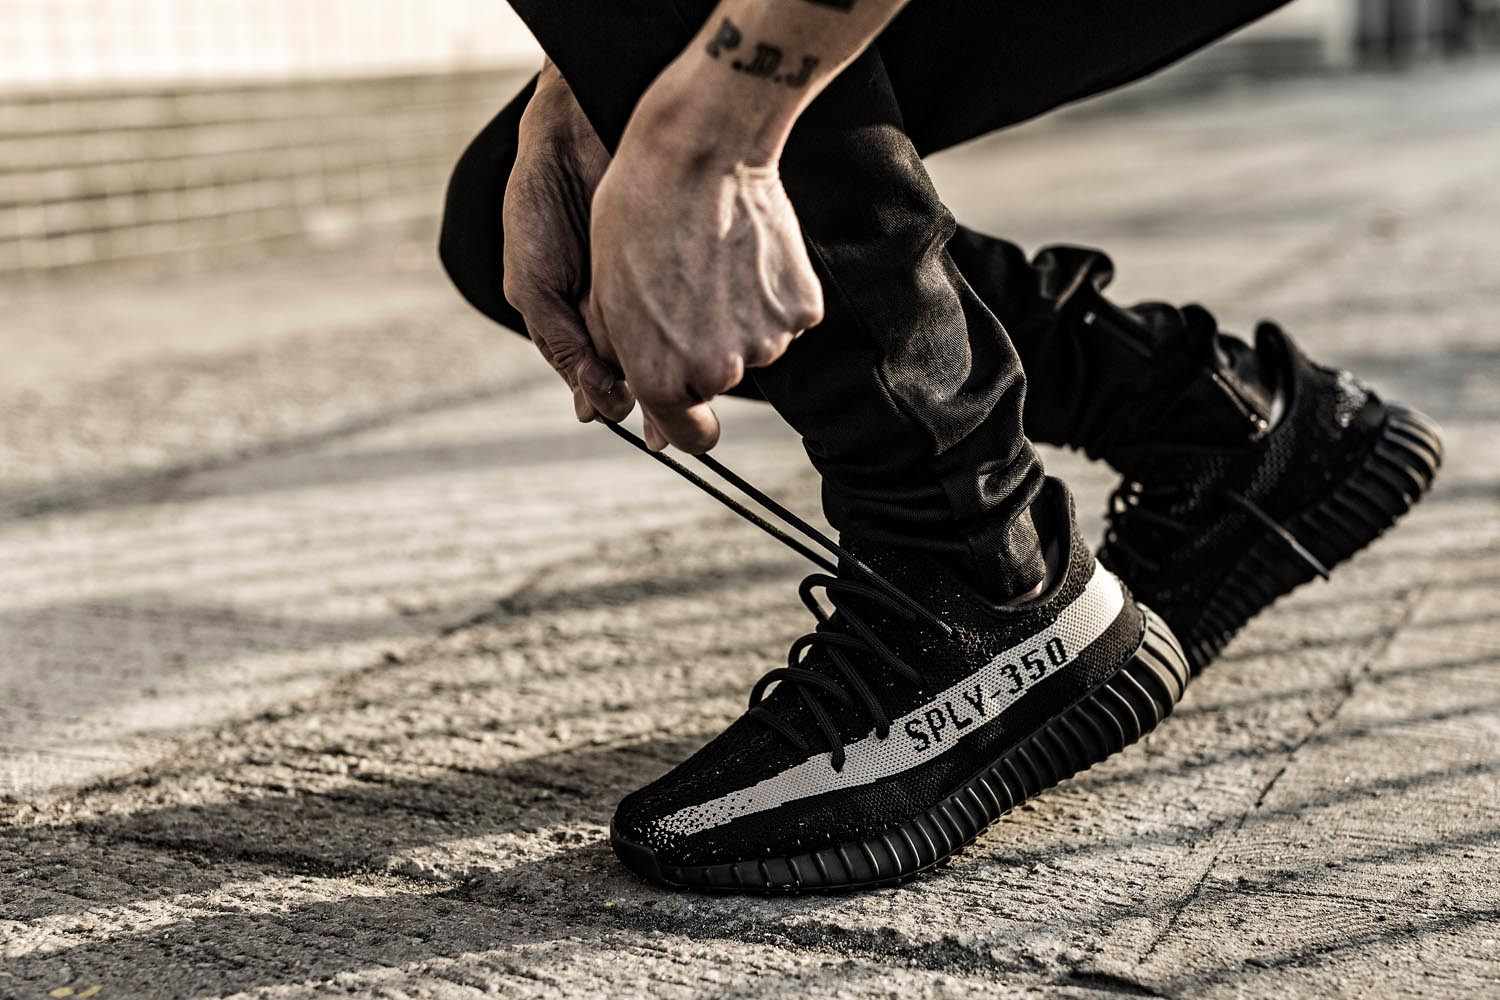 yeezy-boost-350-v2-black-white-raffle-0